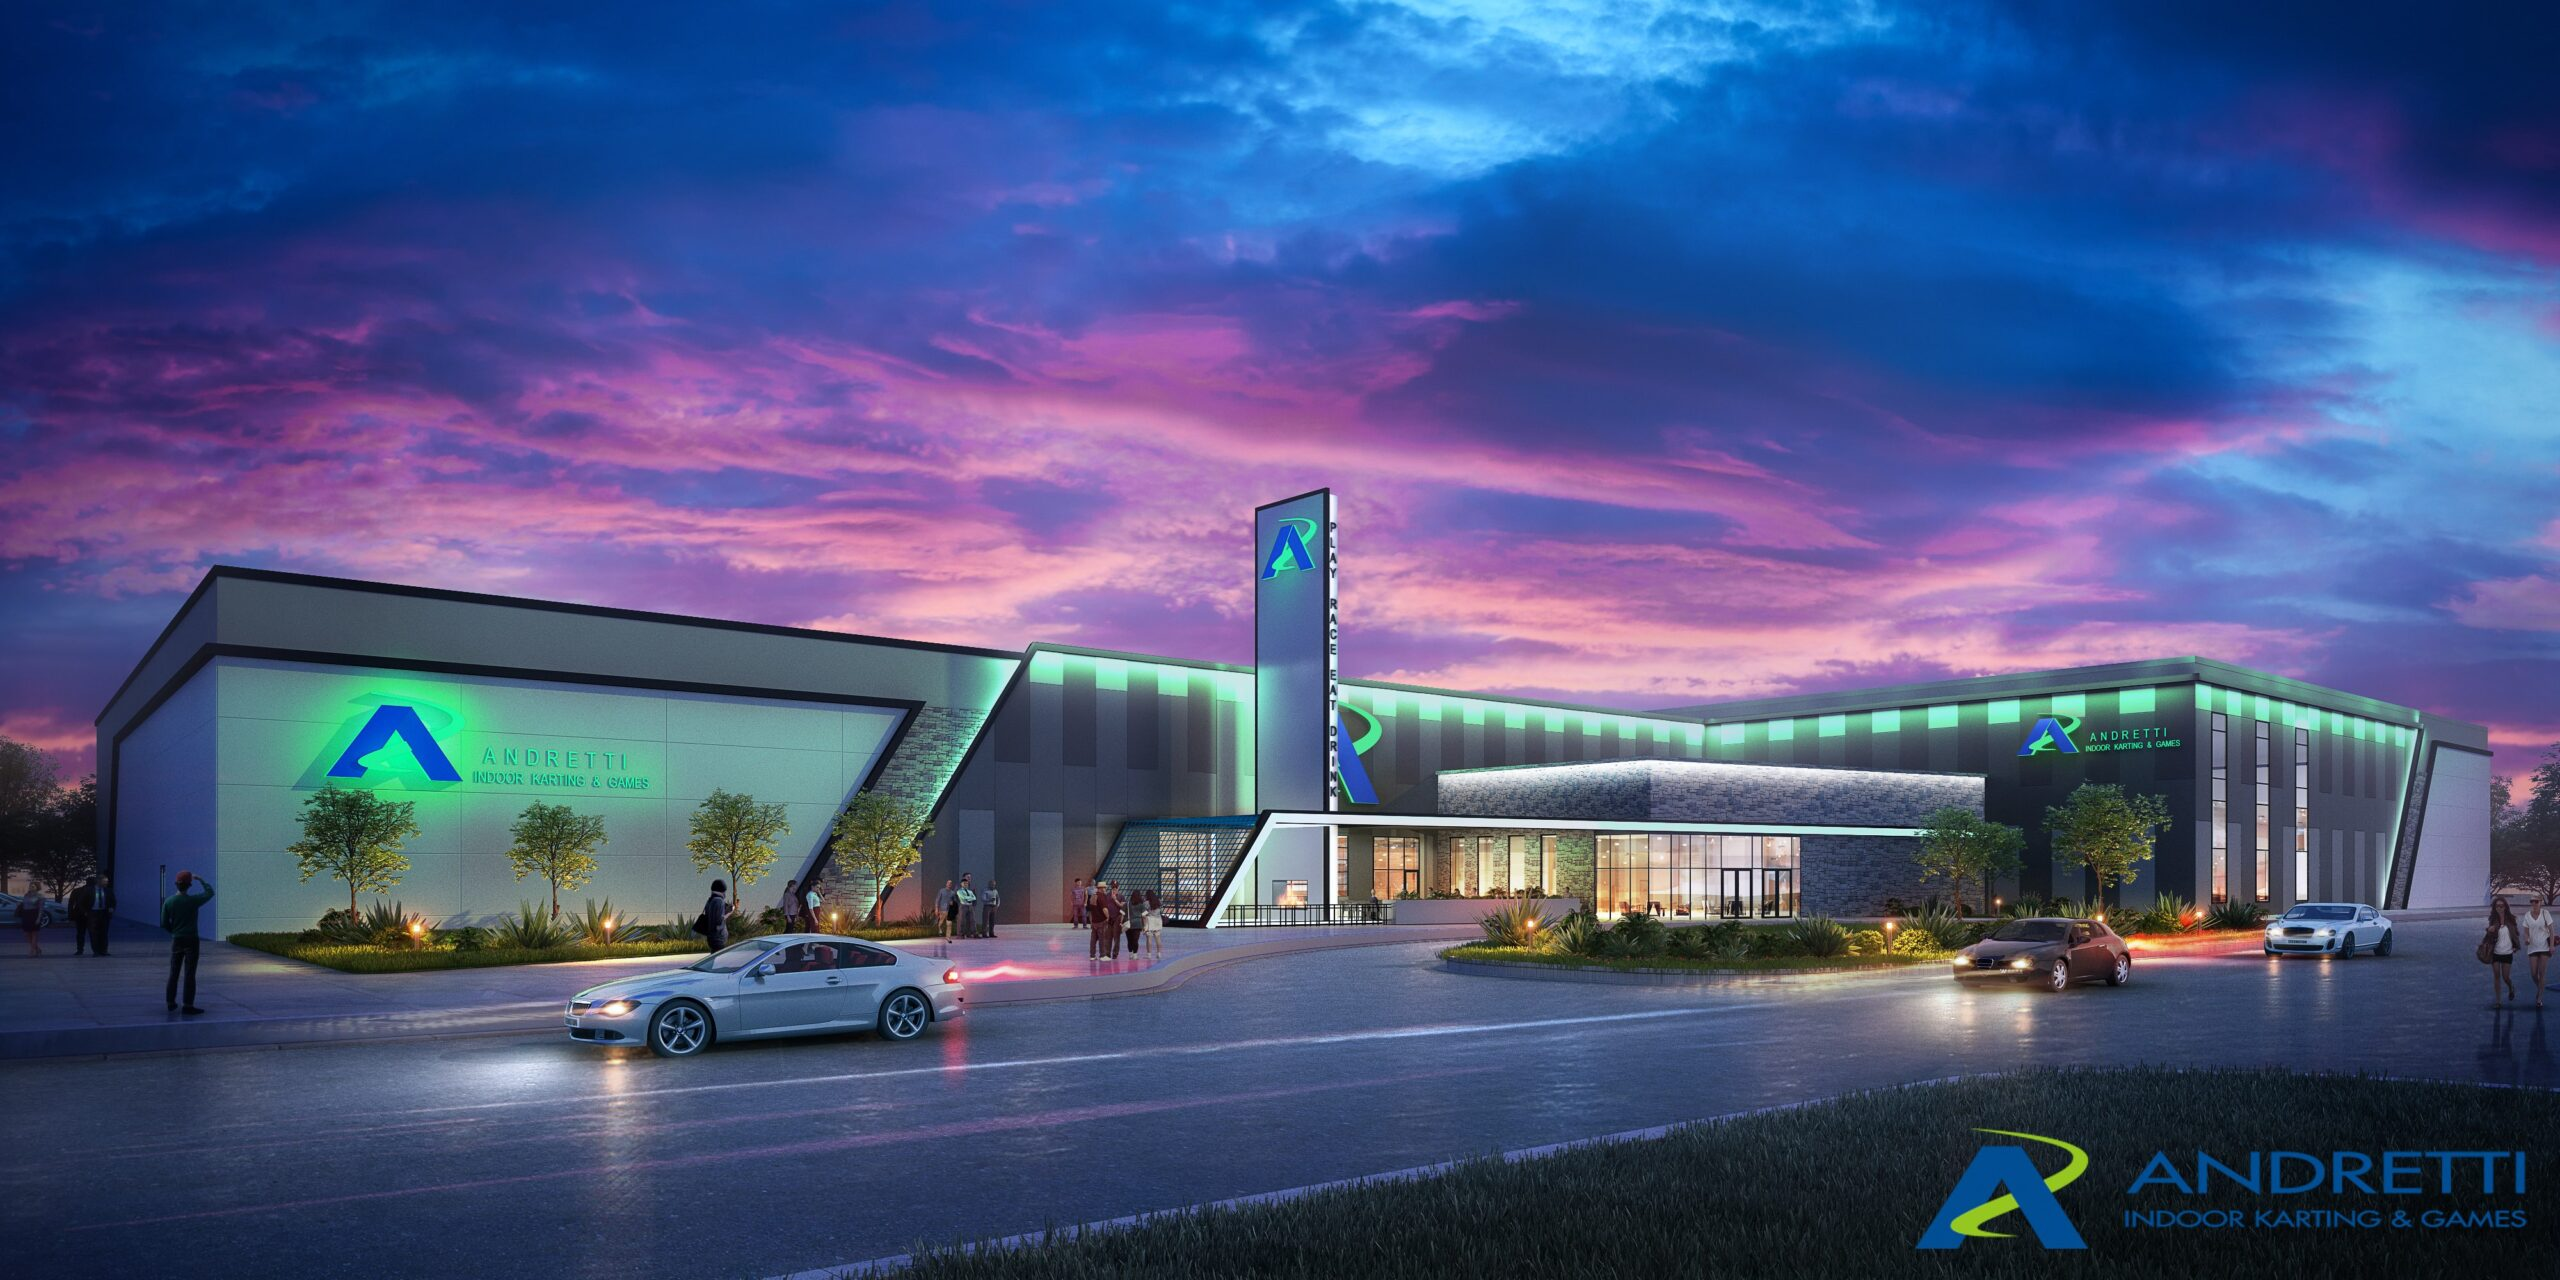 Andretti Indoor Karting and Games Opens Buford, Georgia Location